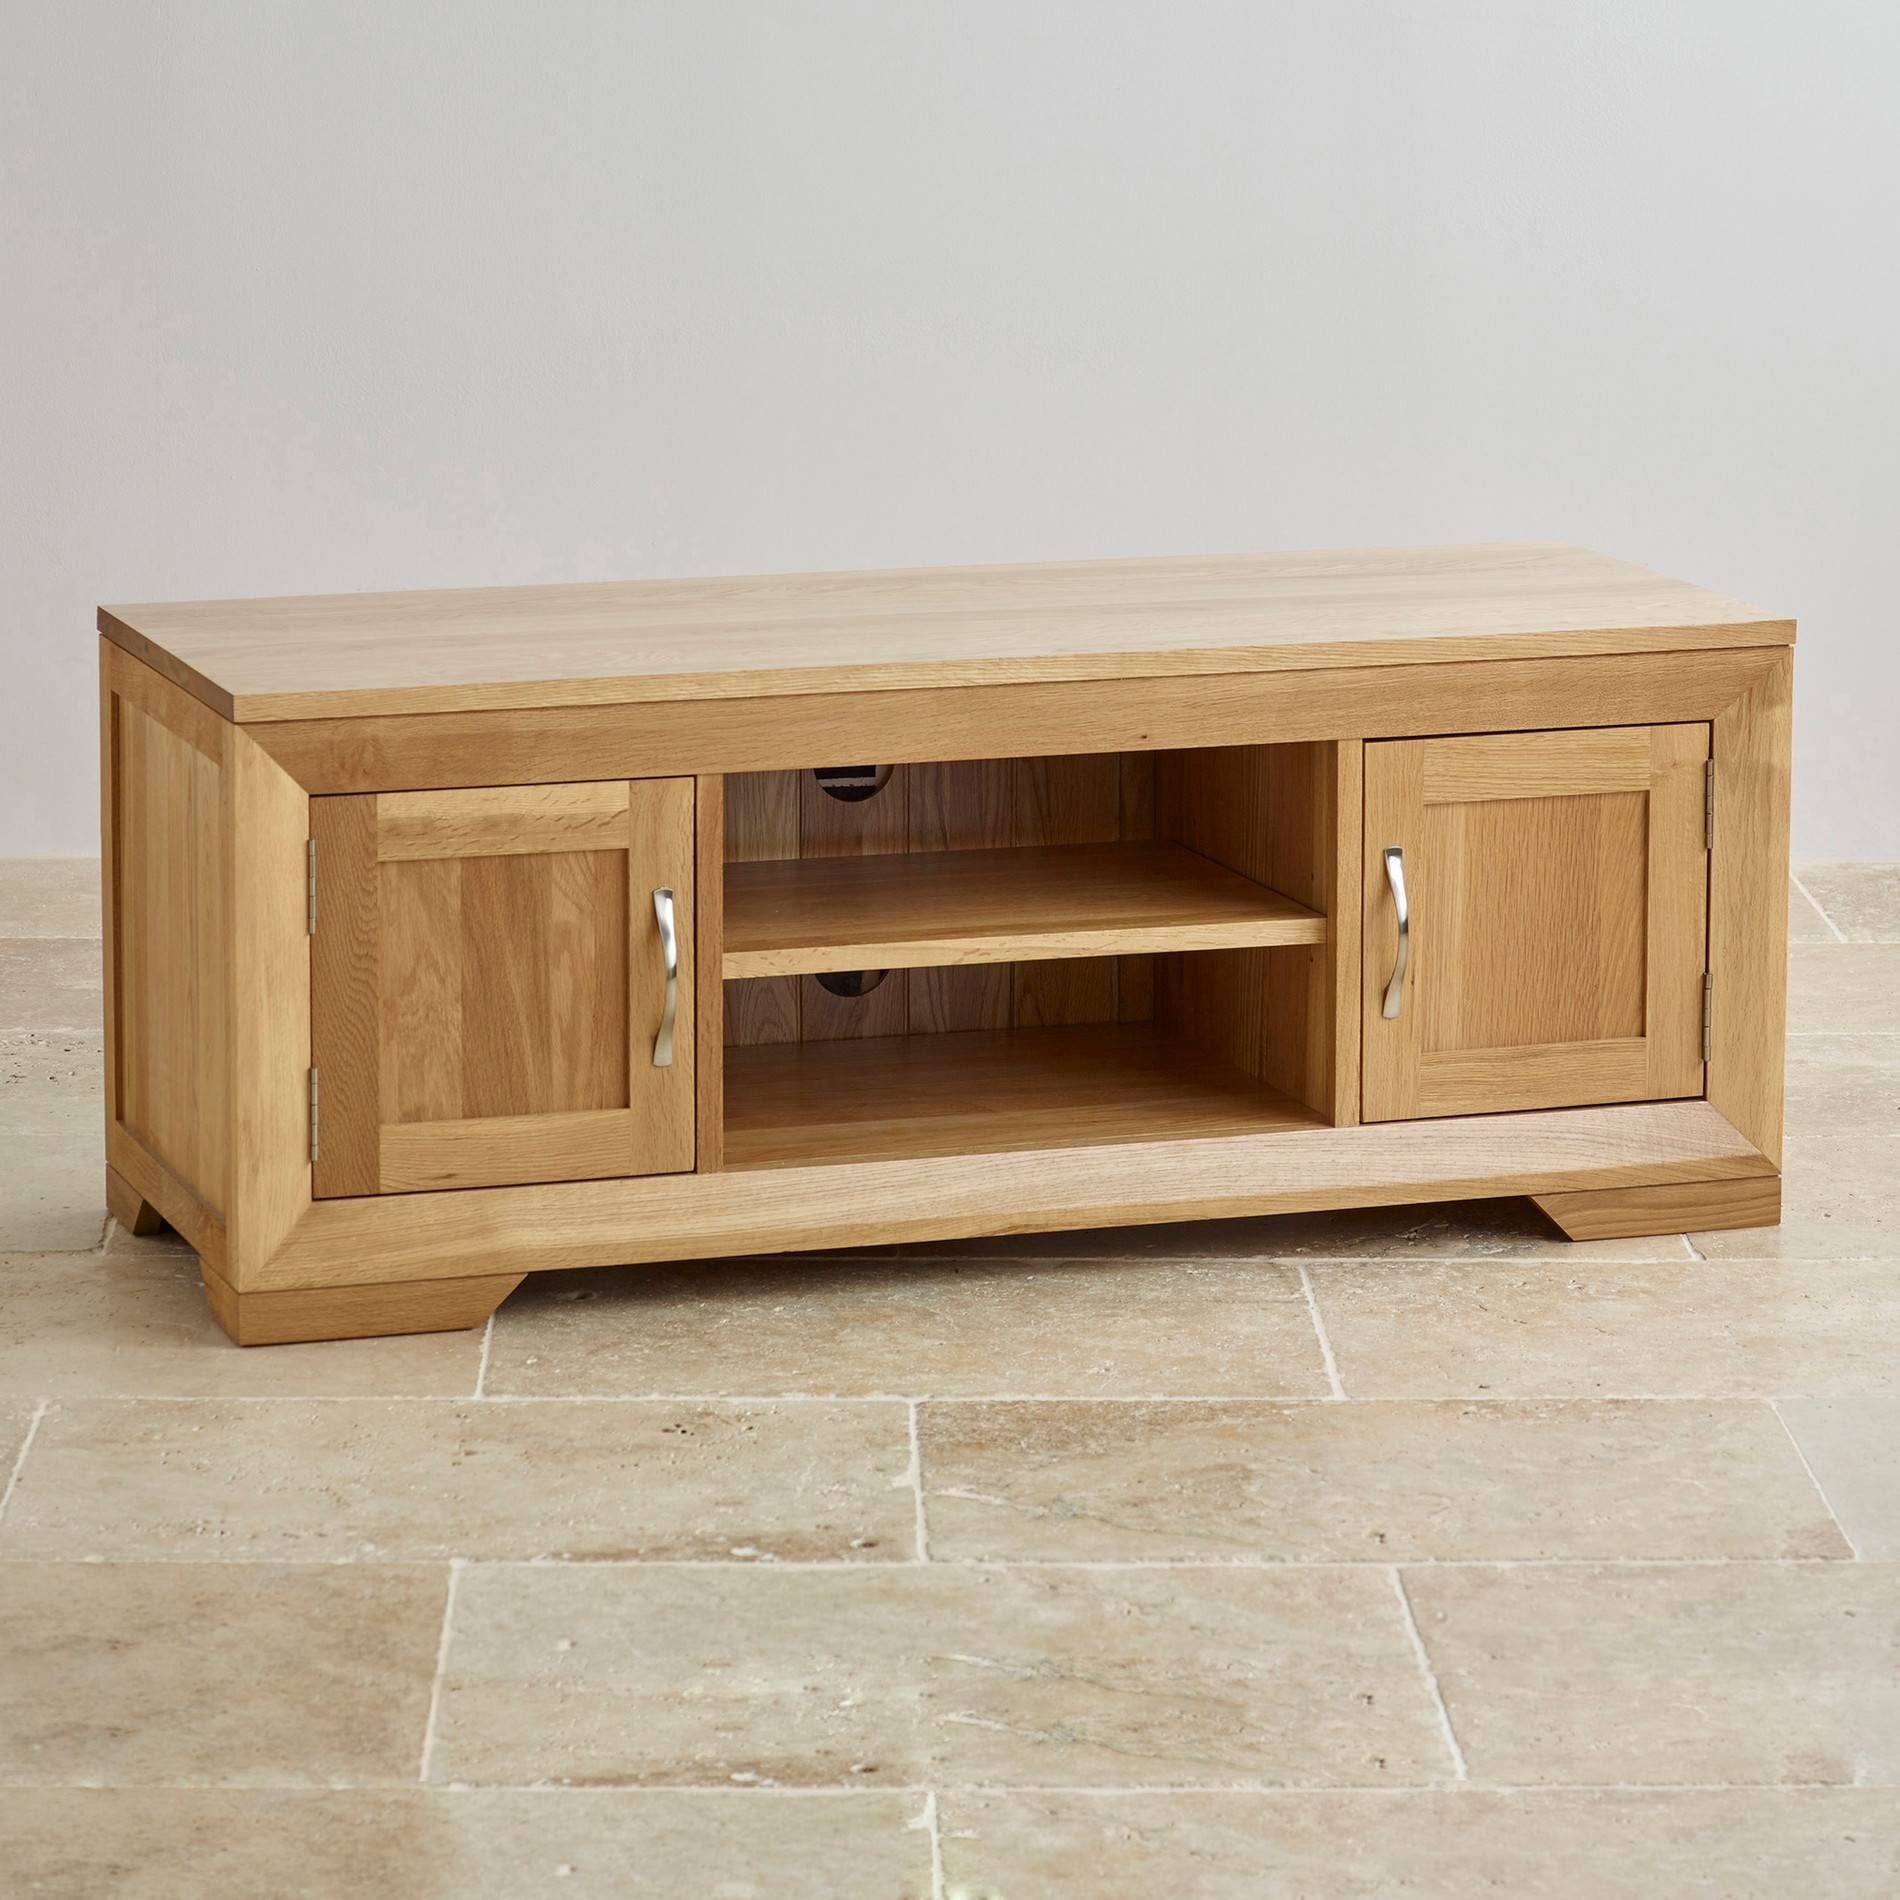 Bevel Natural Solid Oak Widescreen Tv + Dvd Cabinet pertaining to Widescreen Tv Cabinets (Image 3 of 15)